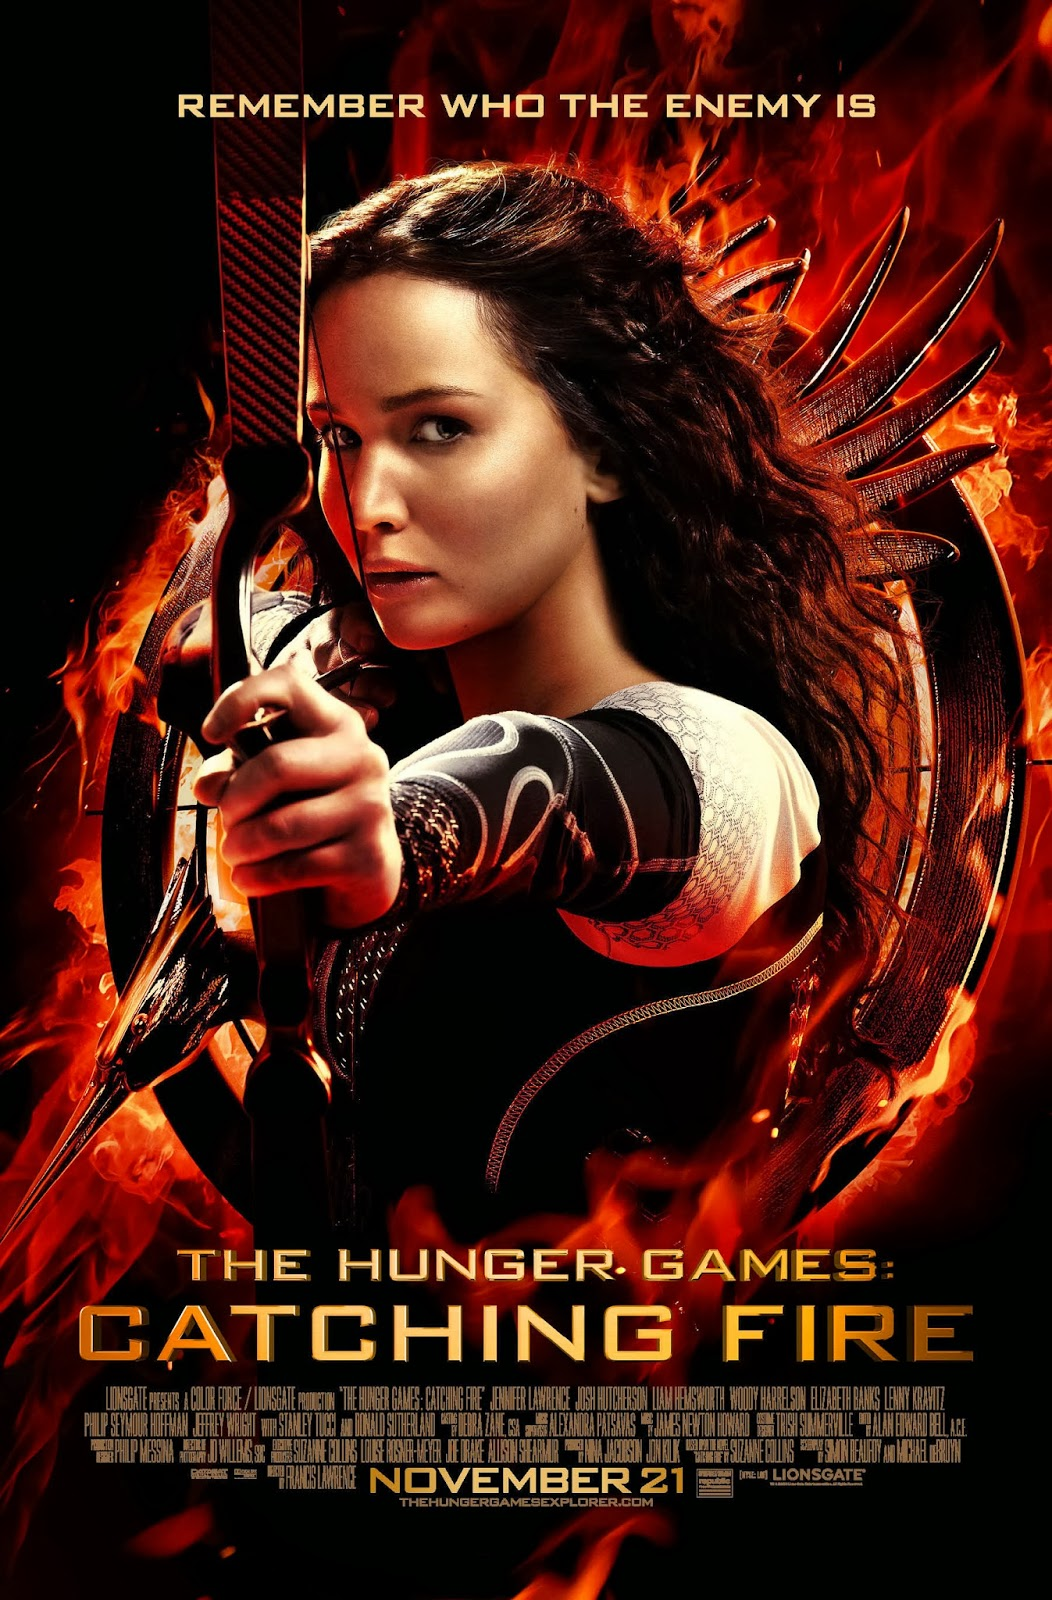 The Hunger Games By Suzanne Collins Ebook